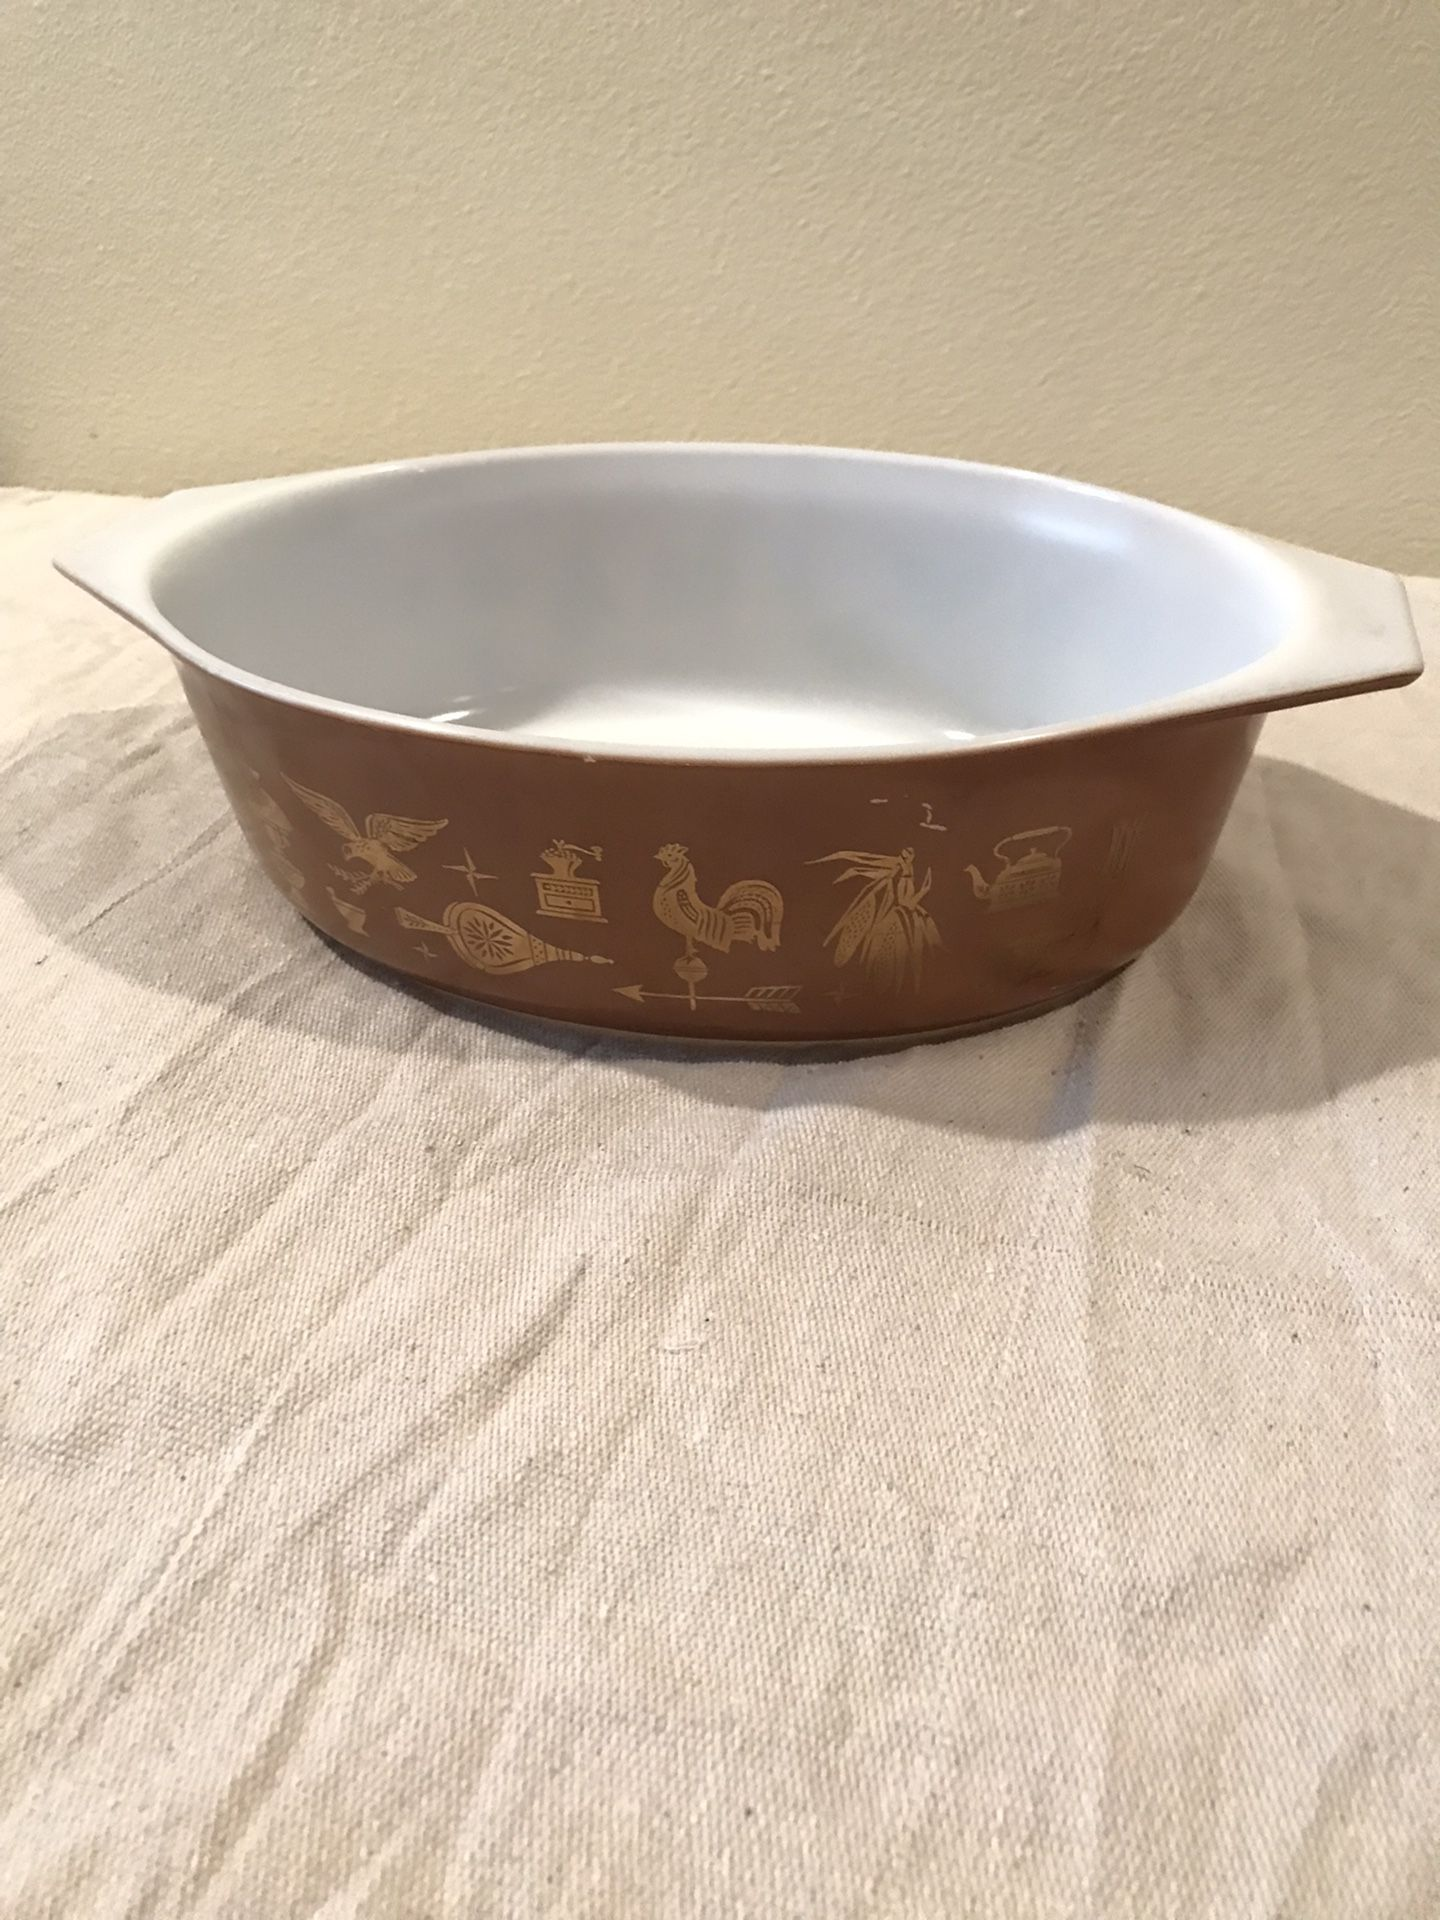 1962 Vintage Pyrex American 043 1 1/2 QT Cinderella Casserole with lid, Colonial Brown w/gold leaf Americana